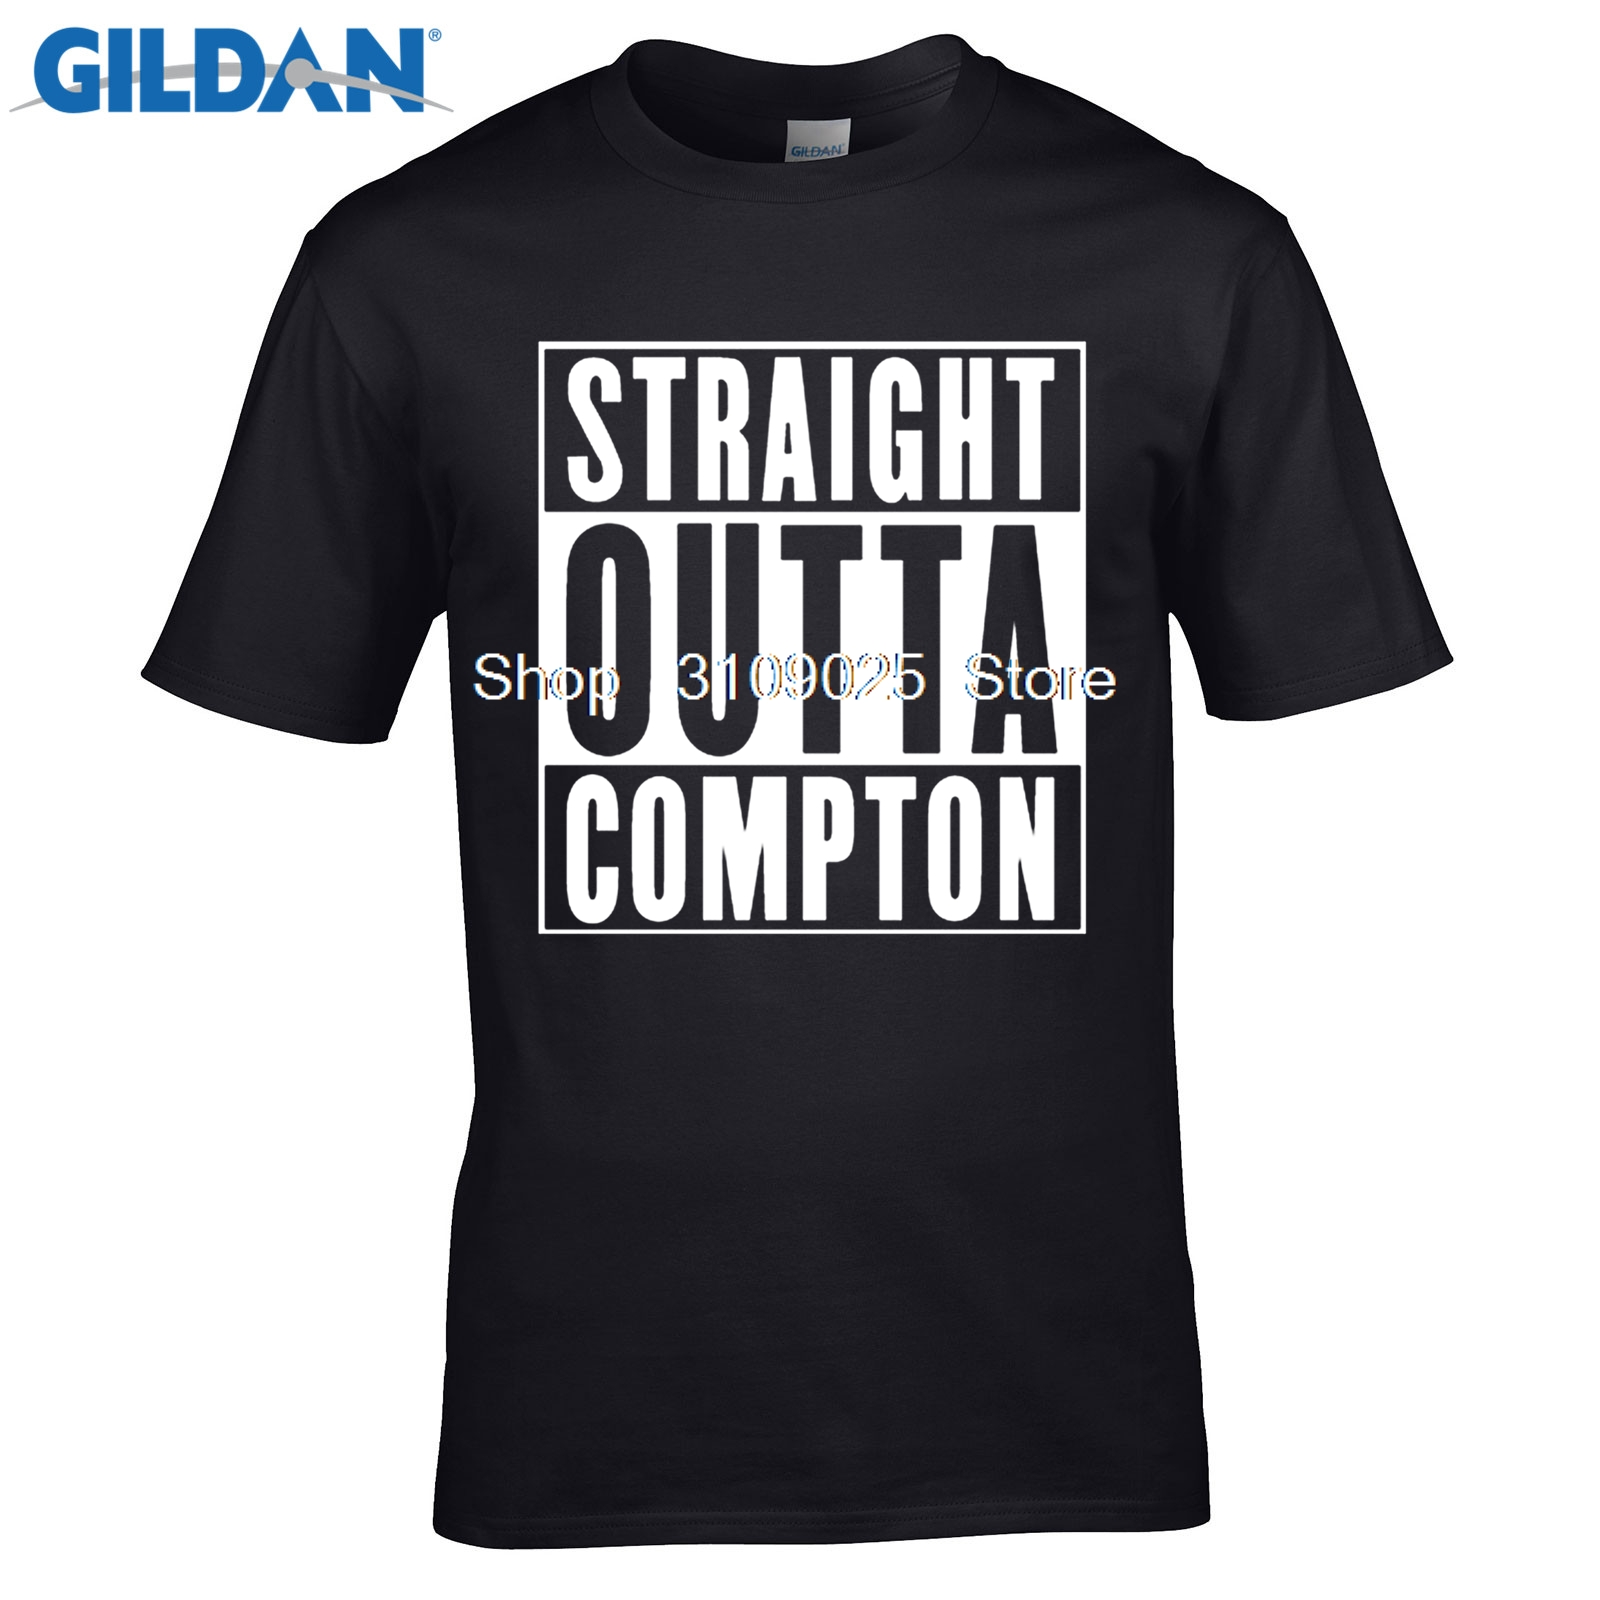 GILDAN funny men t shirt Compton Old English T-Shirt - Eazy E NWA Dr. Dre Easy Game - All Sizes & Colors hip hop N.W.A. T Shirt ...